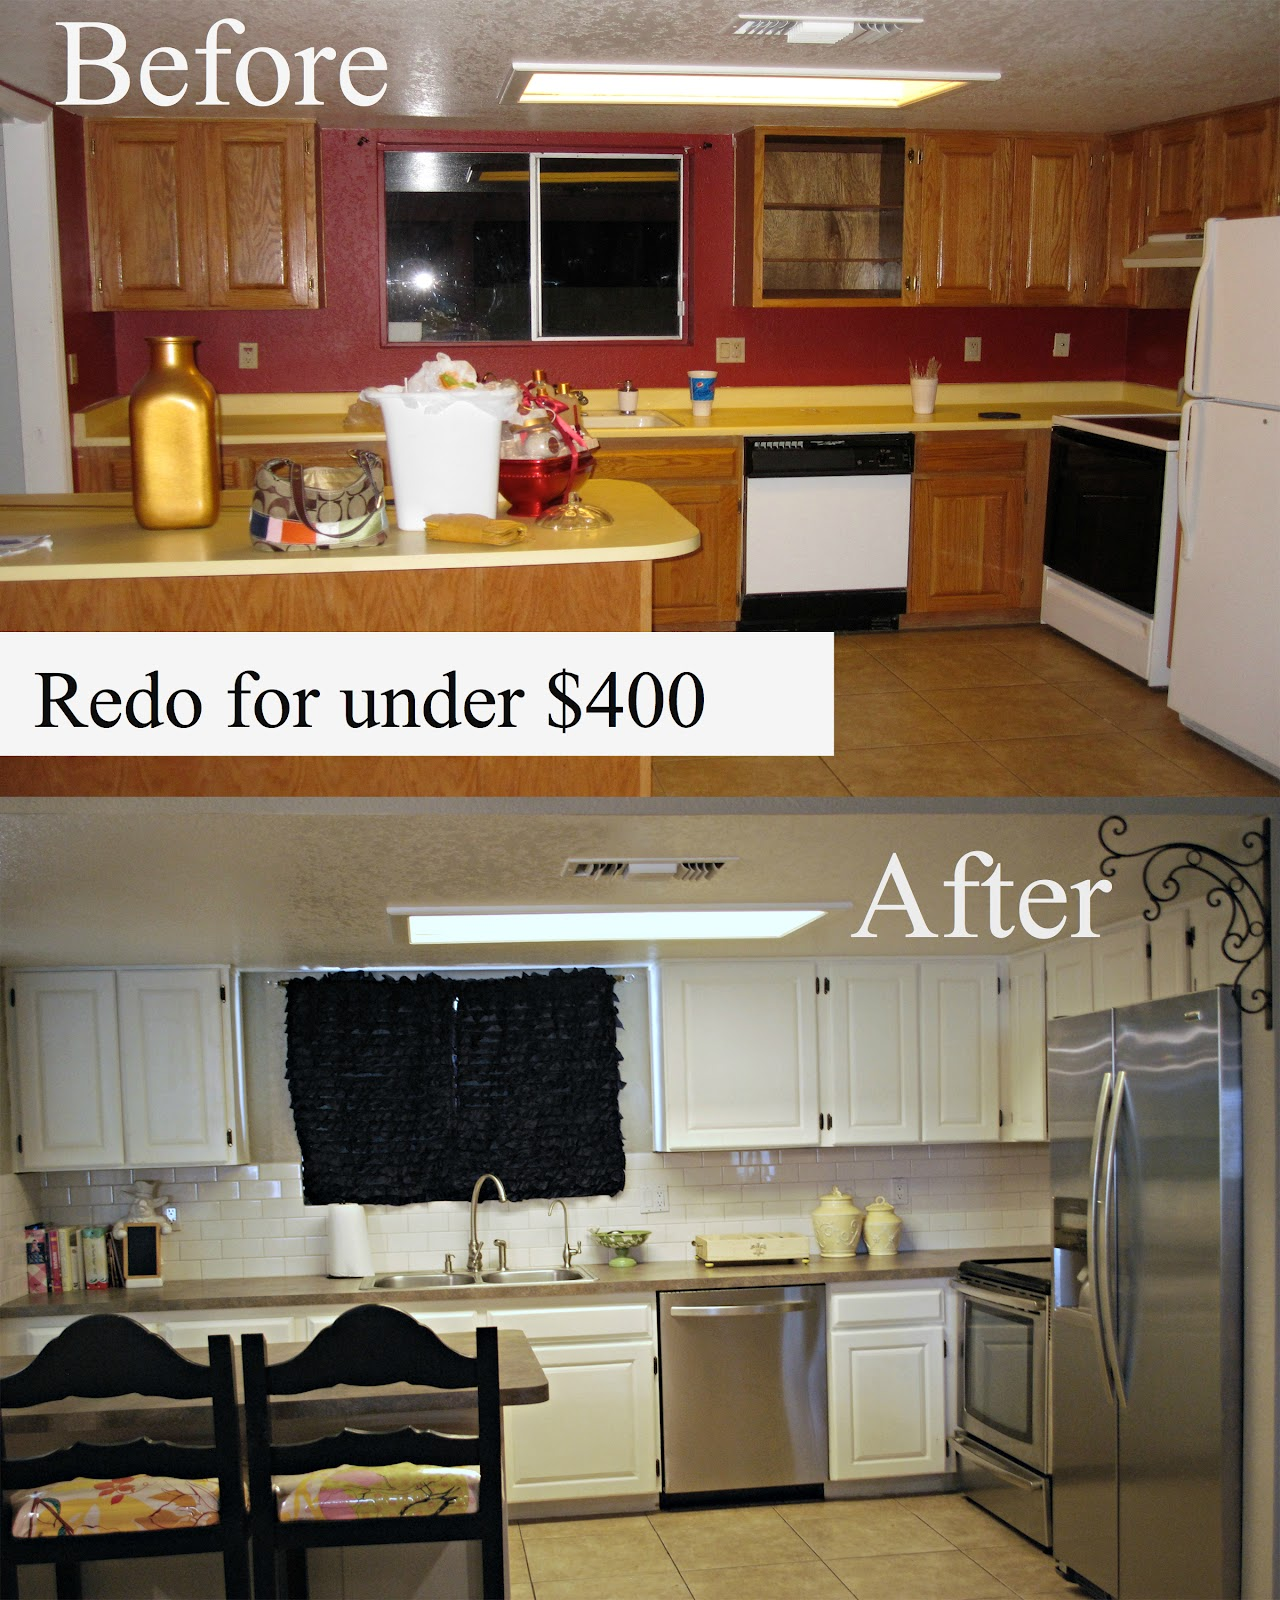 Kitchen Cabinet Ideas On A Budget: My Kitchen Redo Under $400!